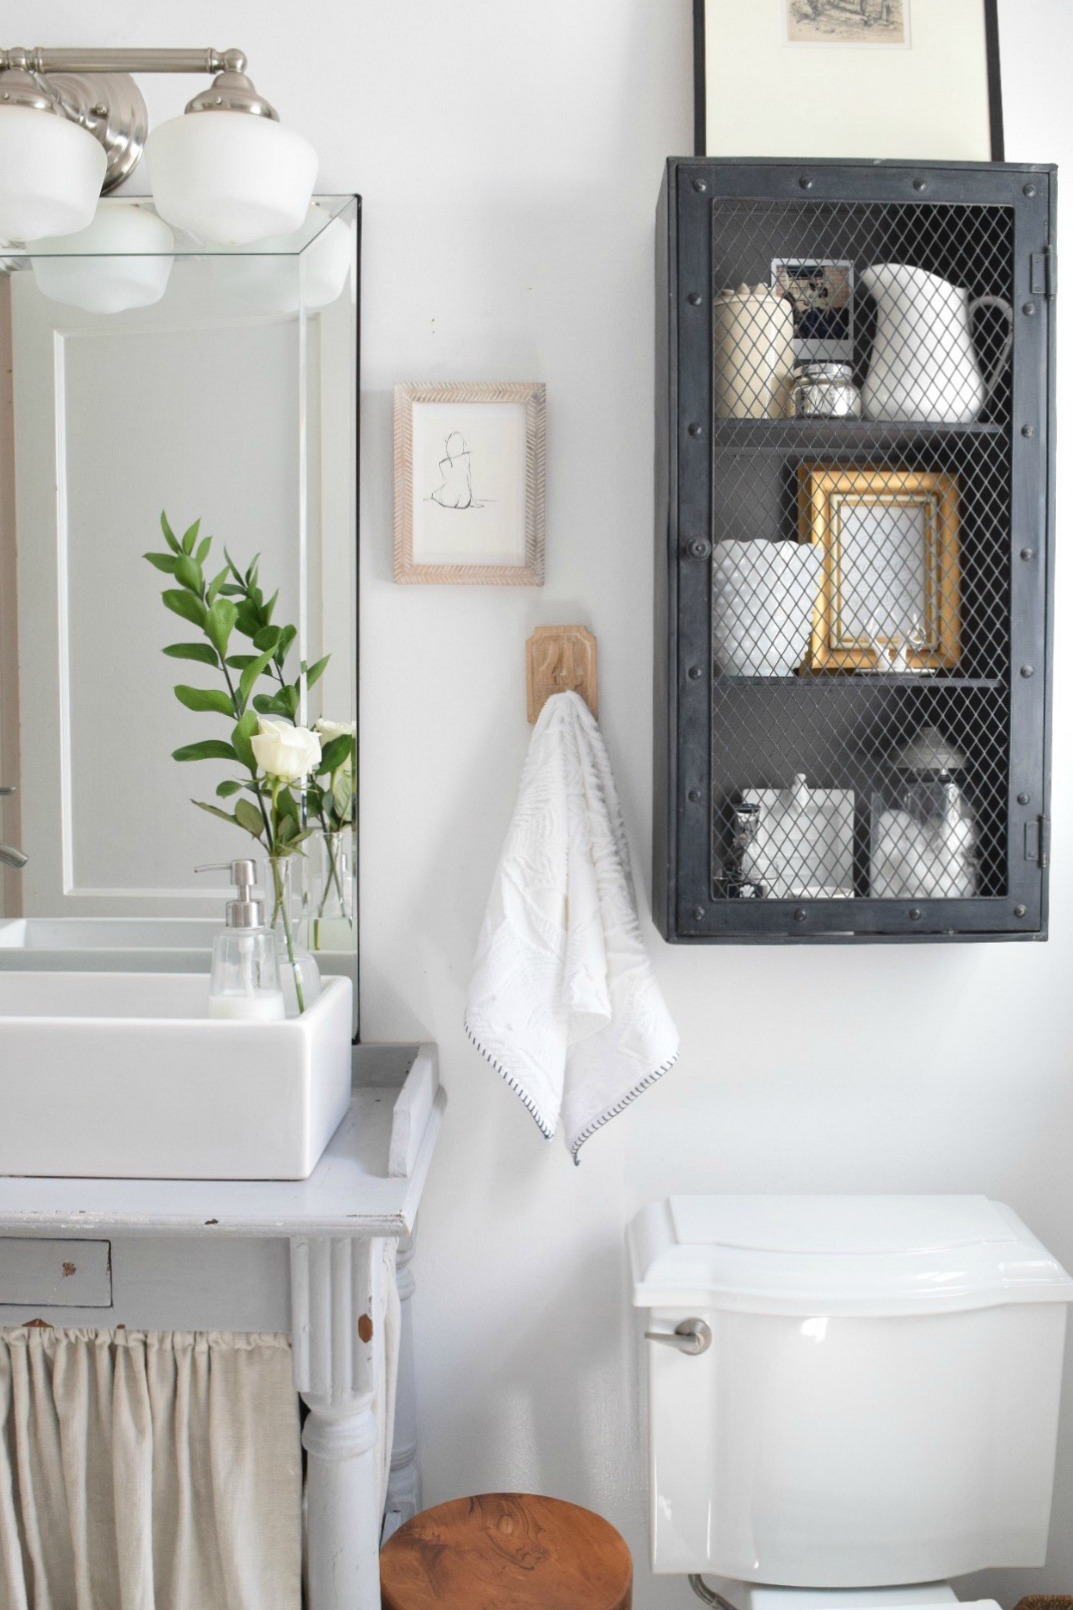 Small Bathroom Ideas and Solutions in our Tiny Cape ... on Bathroom Ideas Small  id=21383